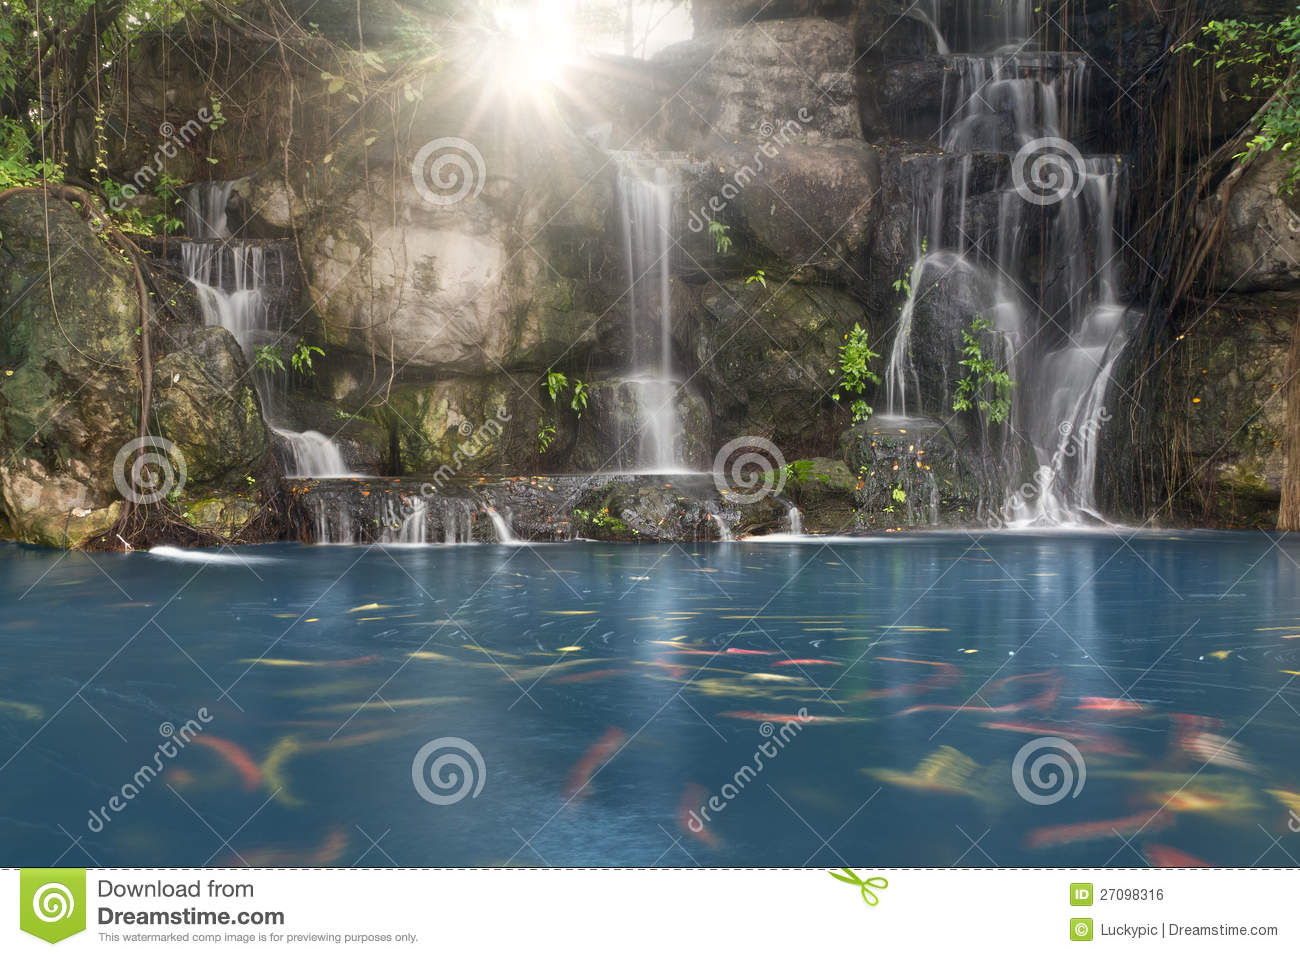 koi fish in pond with a waterfall royalty free stock image. Black Bedroom Furniture Sets. Home Design Ideas